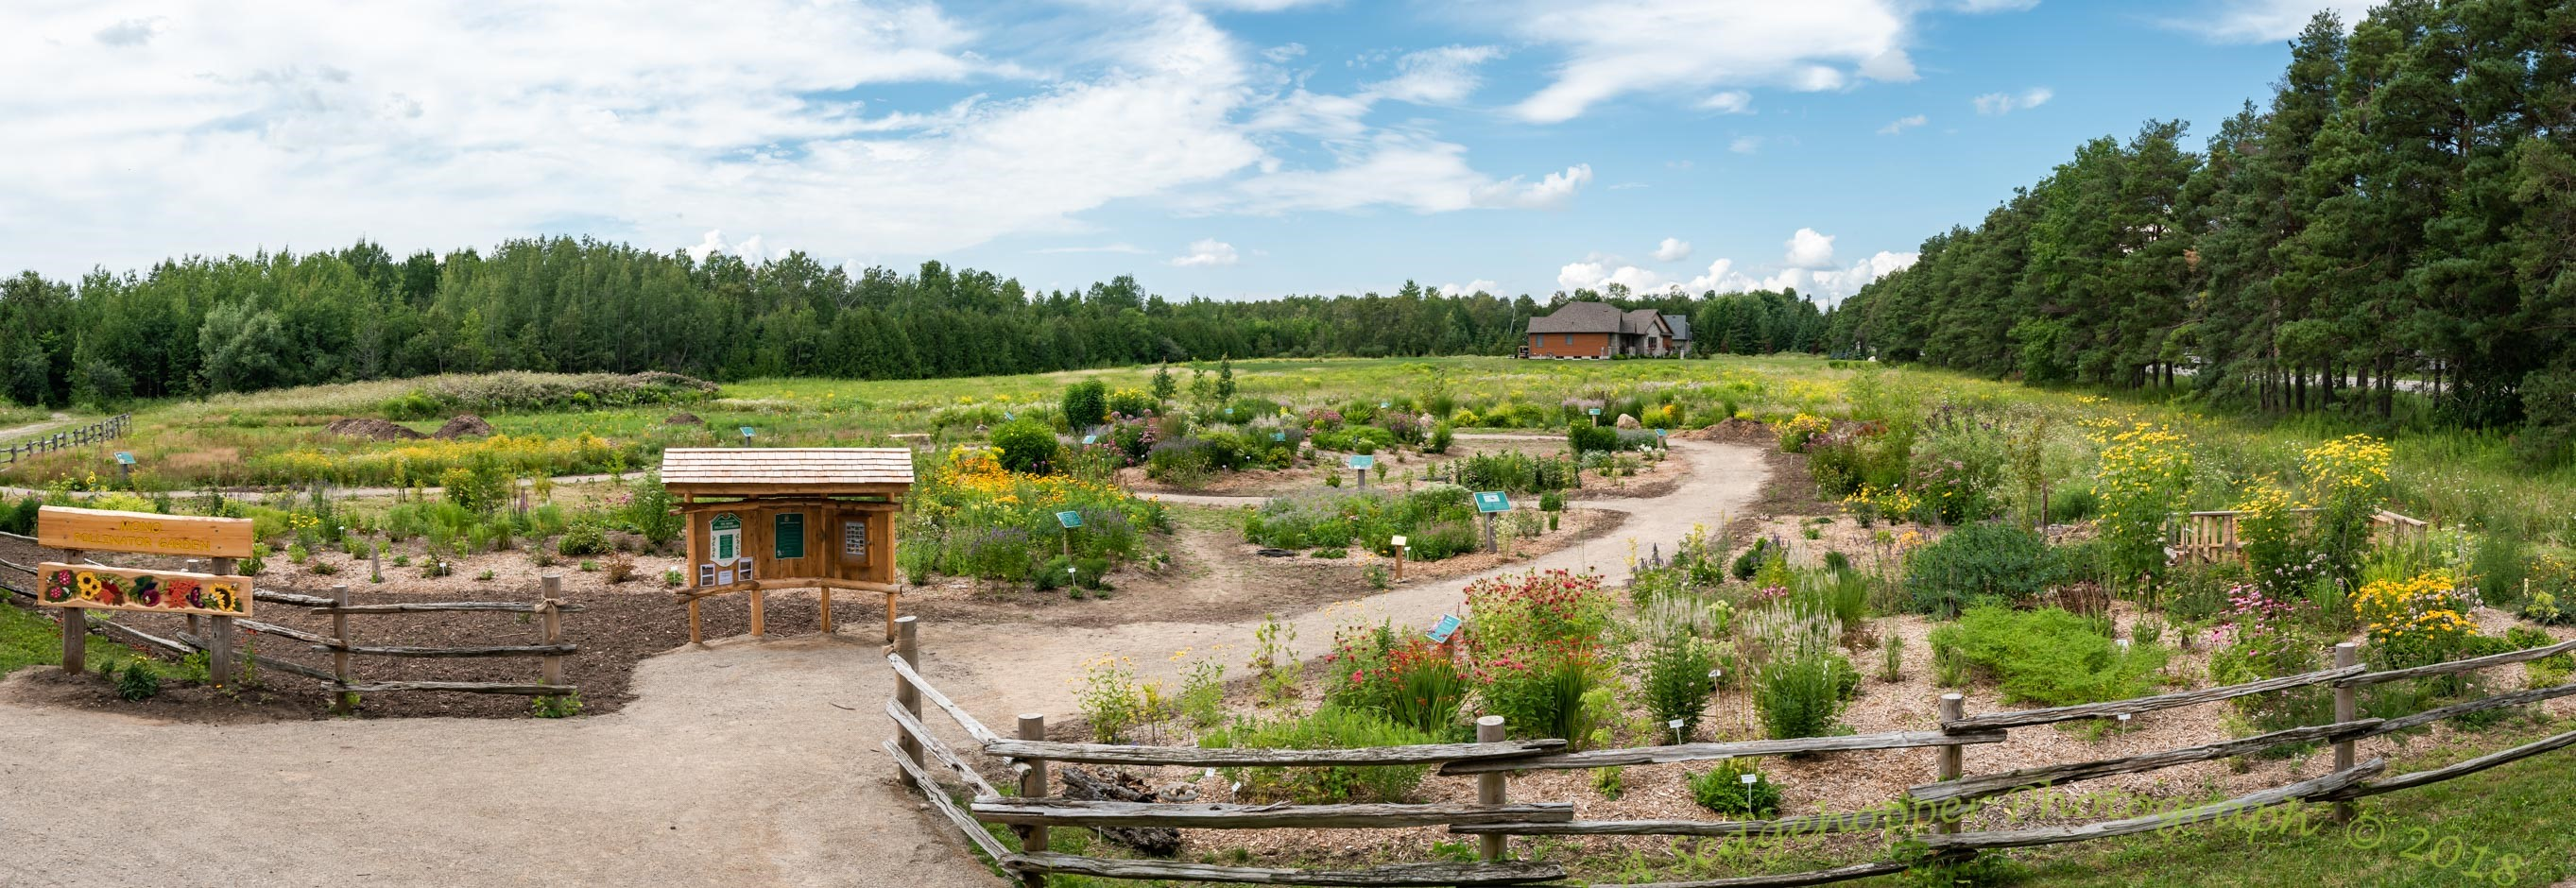 Panoramic view of the Pollintor Garden. Photo Credit: Kevin Tipson